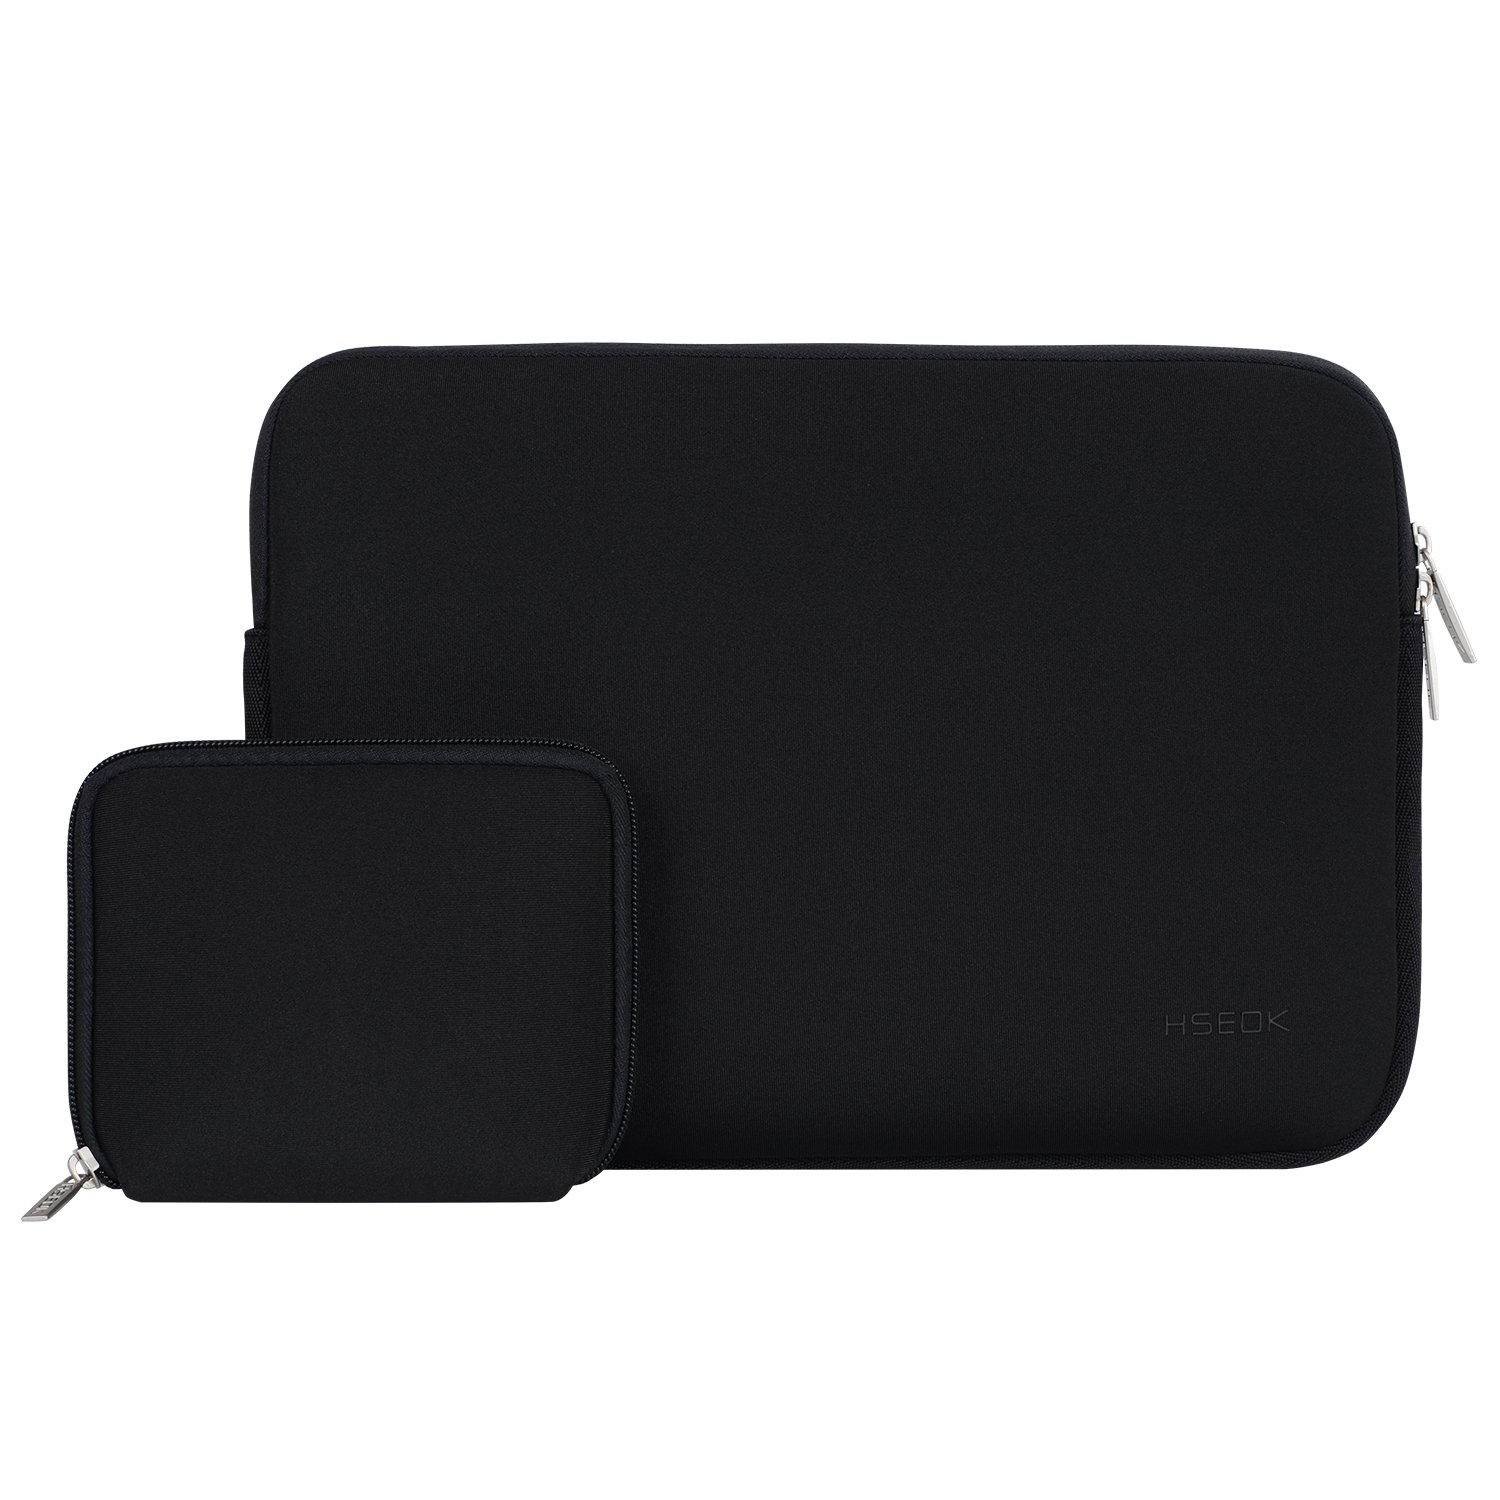 55d2b5d568af Hseok 15.6 Inch Laptop Case Sleeve, Water-Resistant Sleeve with Small Case  for 15.4 Inch New MacBook Pro A1707/ MacBook Pro A1286, 15.6 Inch ...